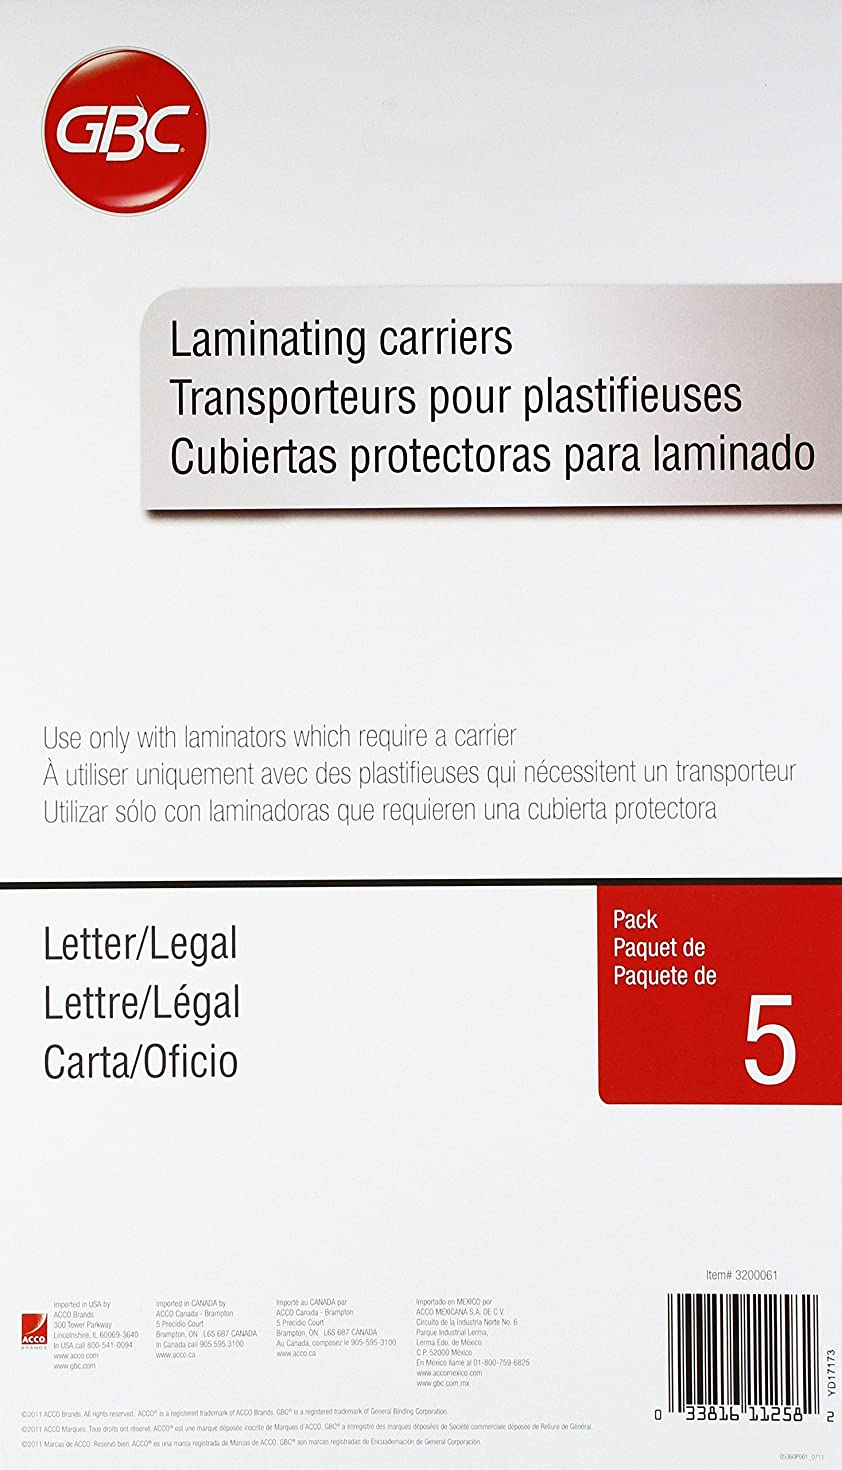 Swingline GBC Laminating Carriers, Self Seal Adhesive Laminating Pouches, Letter/Legal Size, 5 Pack (3200061)